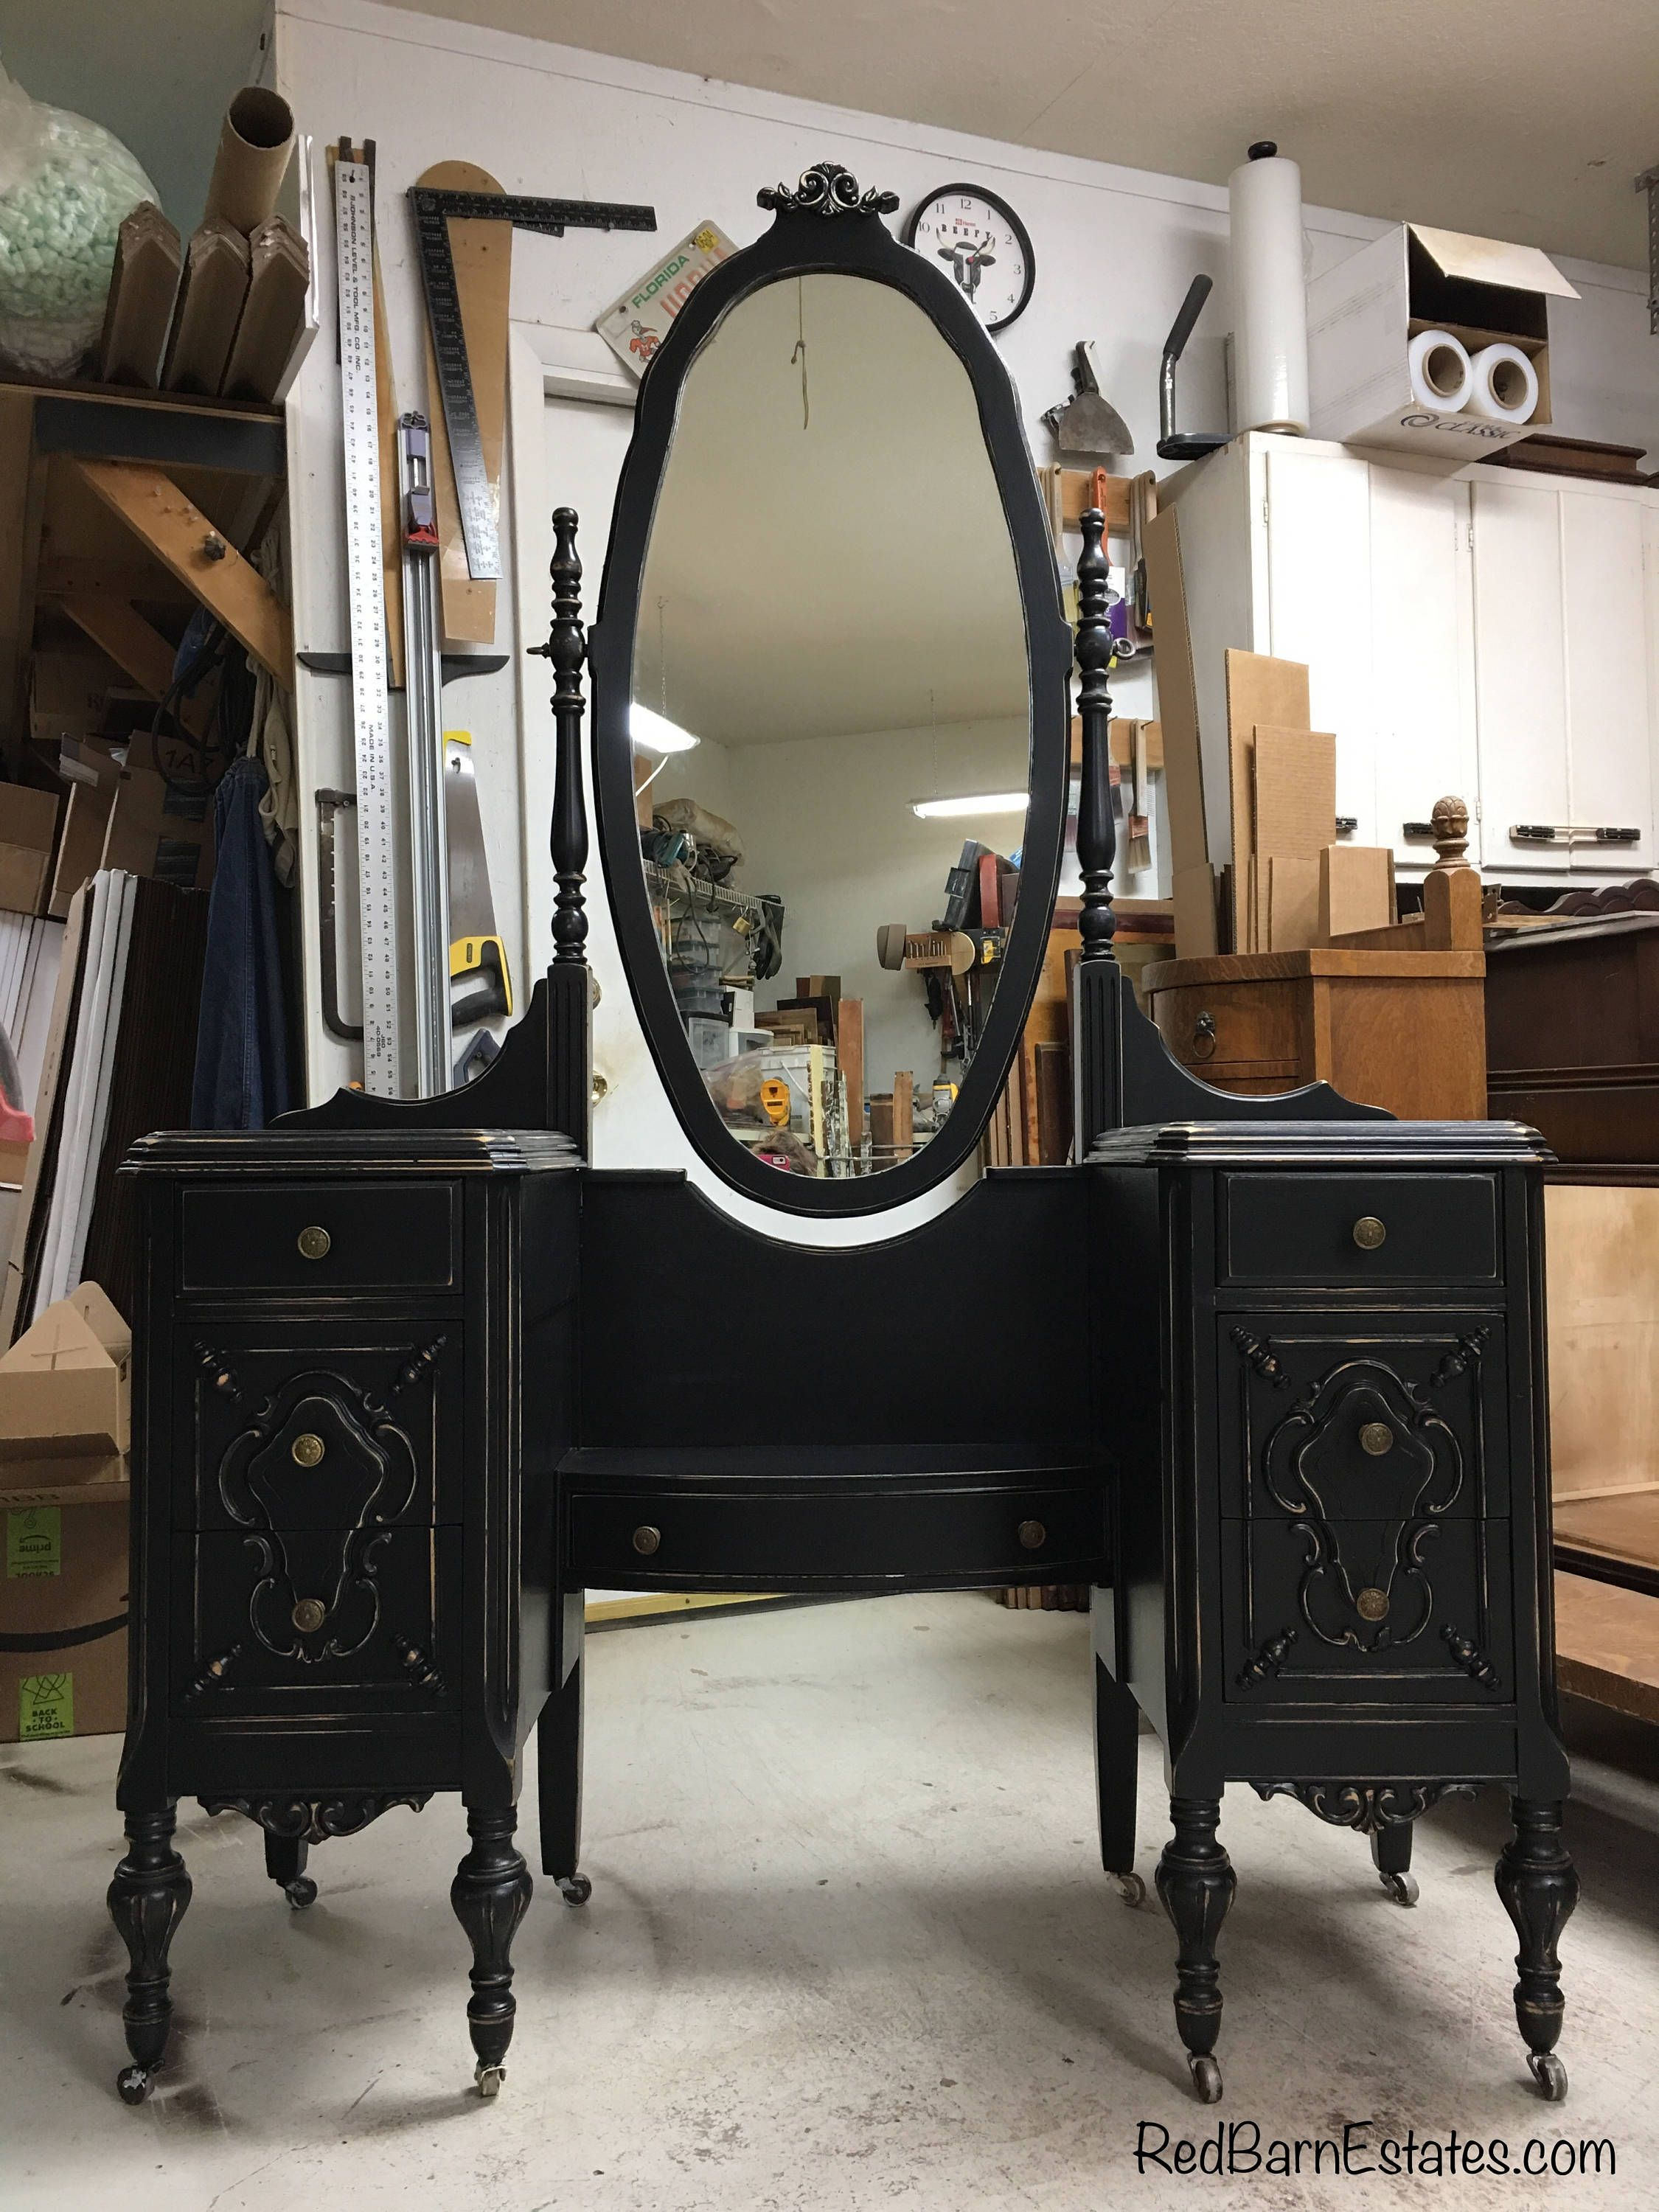 MAKEUP VANITY In Your Color! Order Your Own Antique Vanity